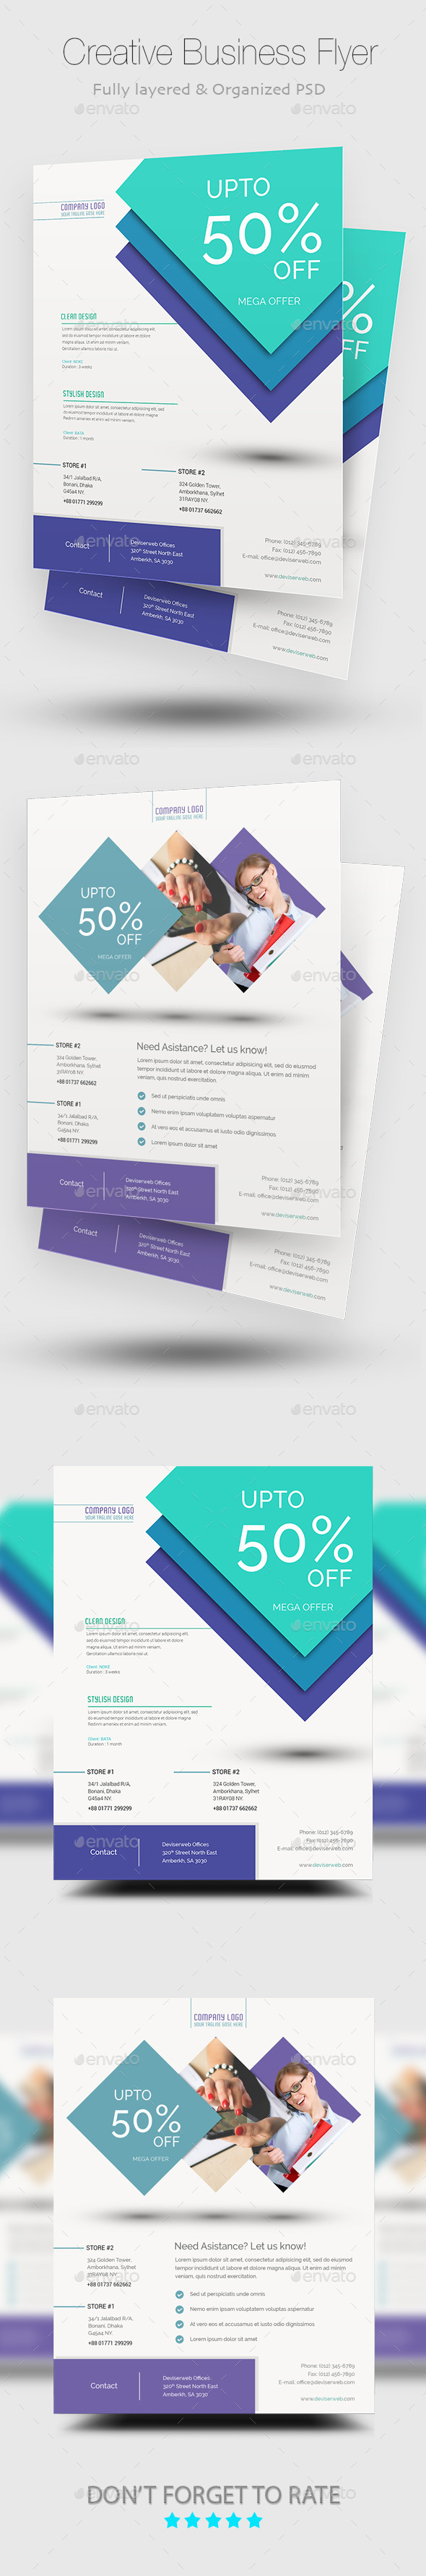 Creative Business Flyer/Poster Templates - Corporate Flyers